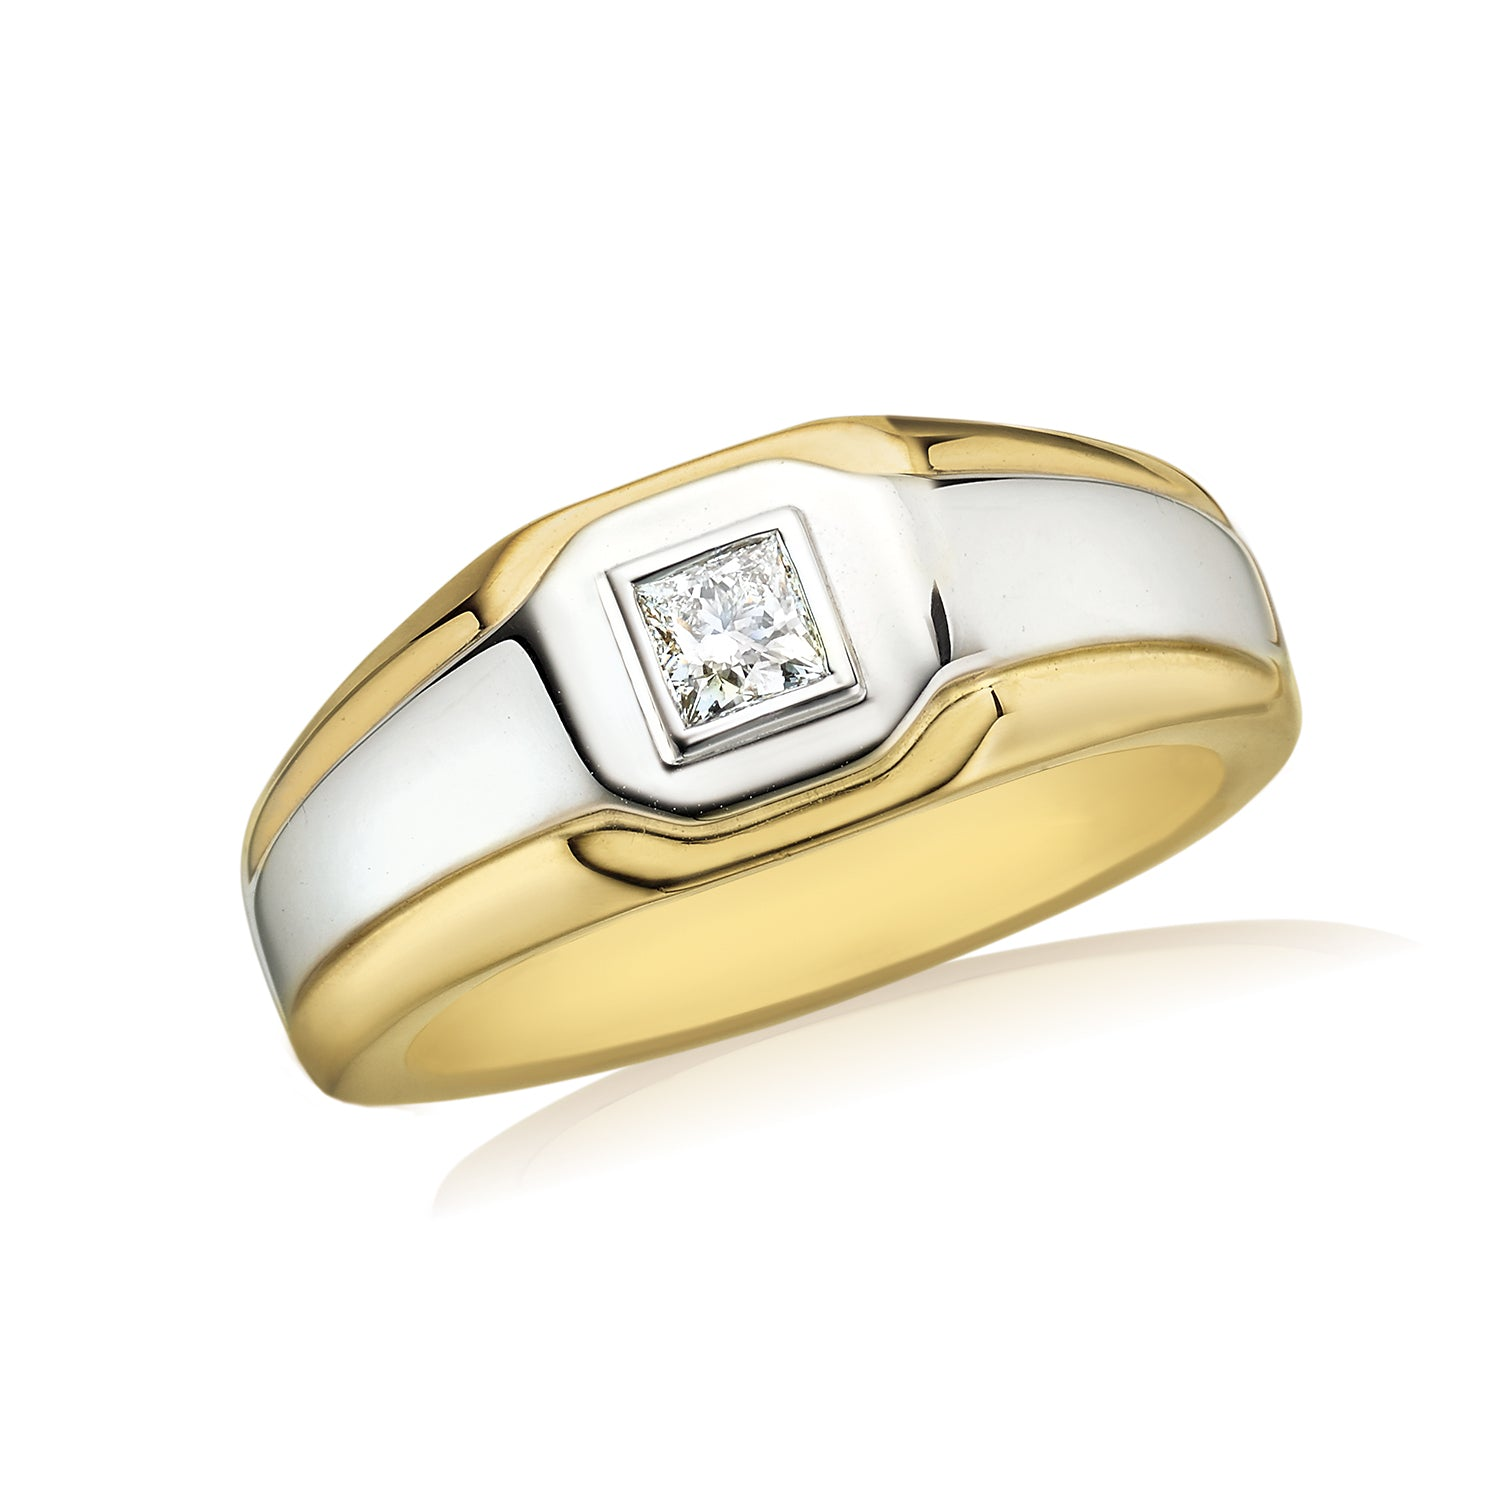 Rand 18ct Two Tone Gold with 0.30 CARAT tw of Diamonds